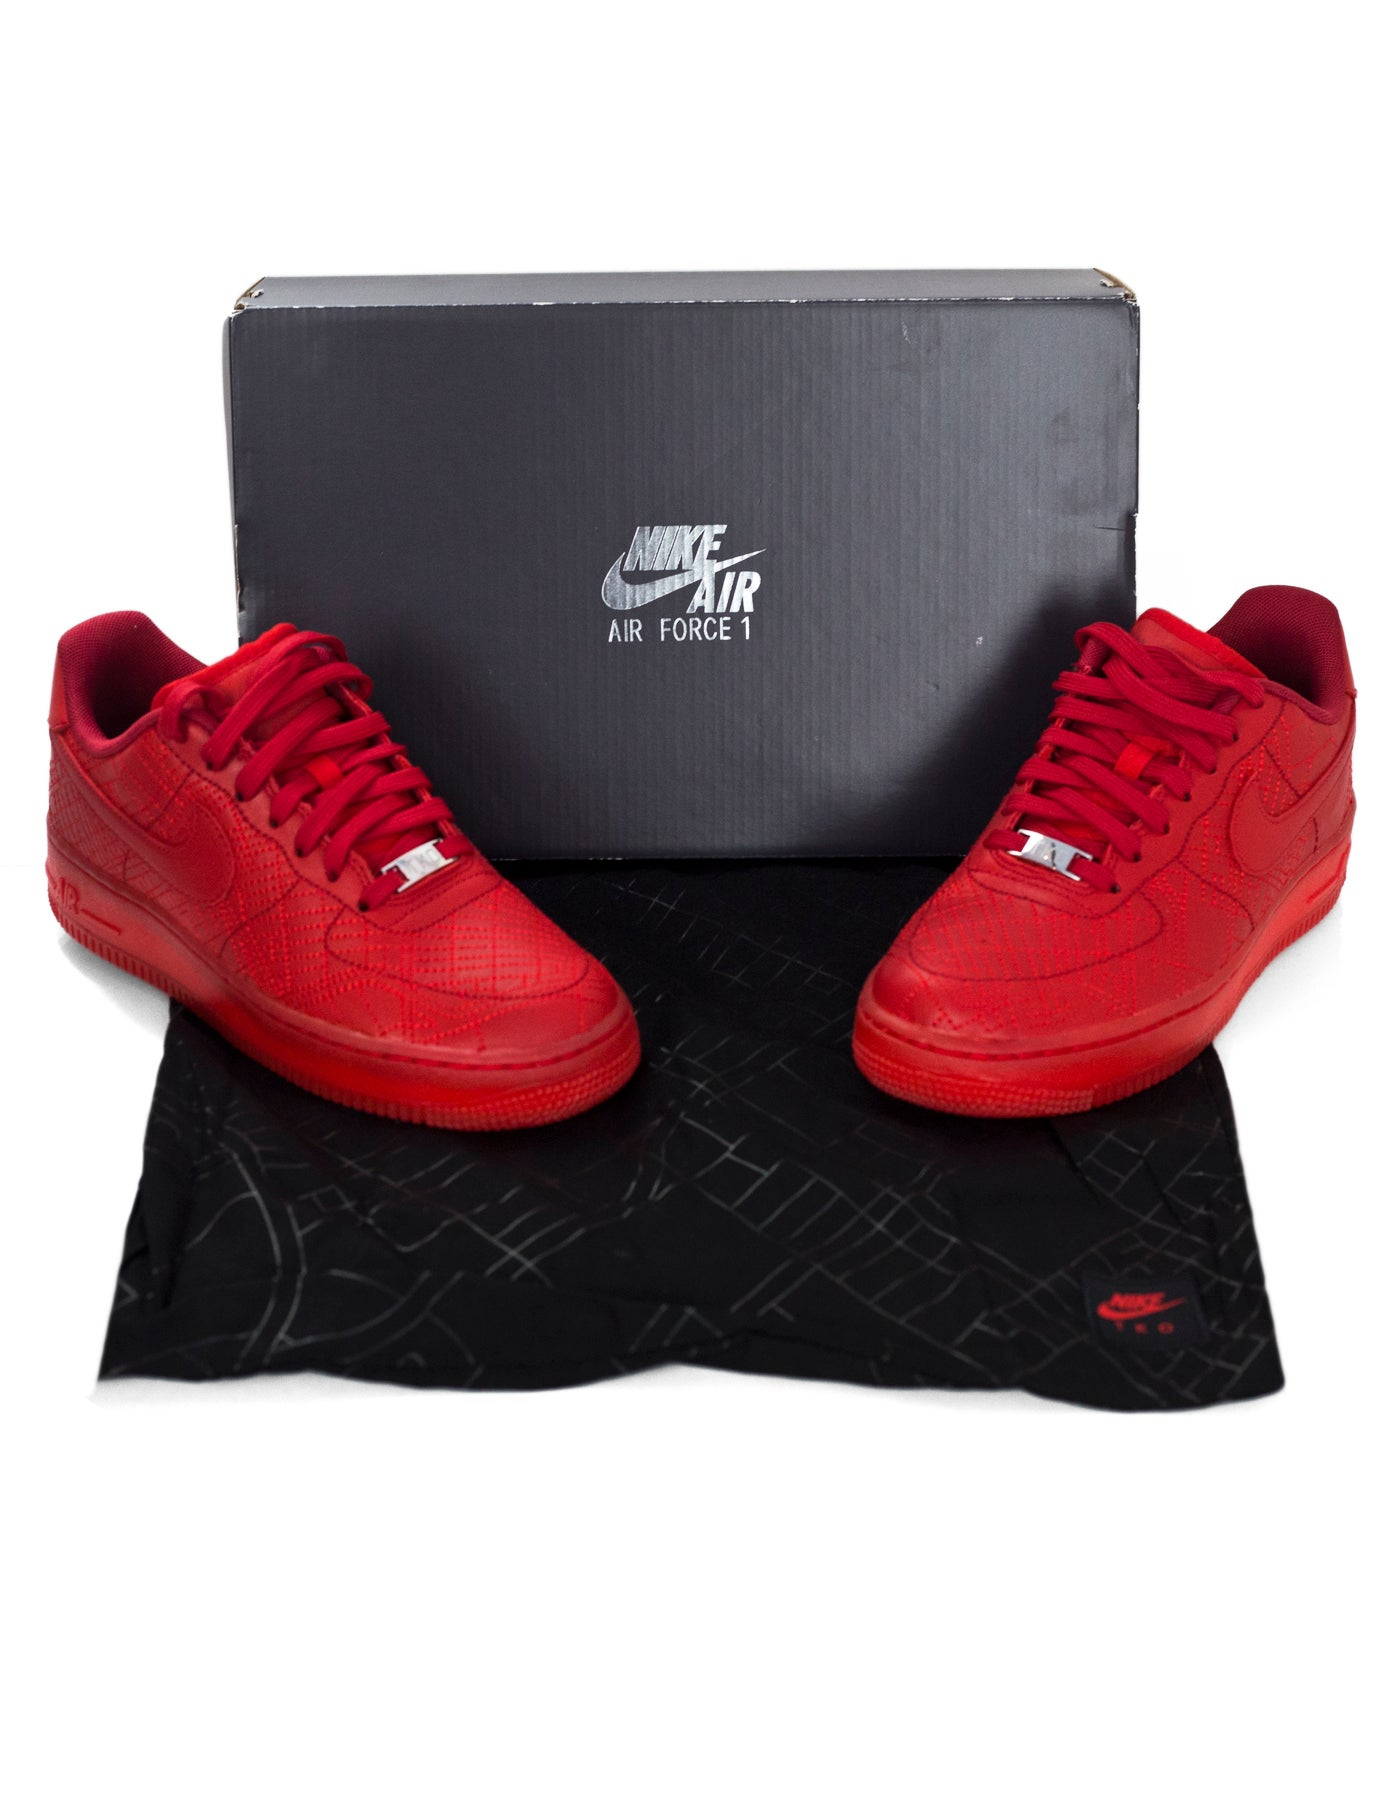 Nike Limited Edition Red WMNS City Collection Air Force 1 Sneakers Sz 7.5  NIB For Sale at 1stdibs 7b617f707aaa